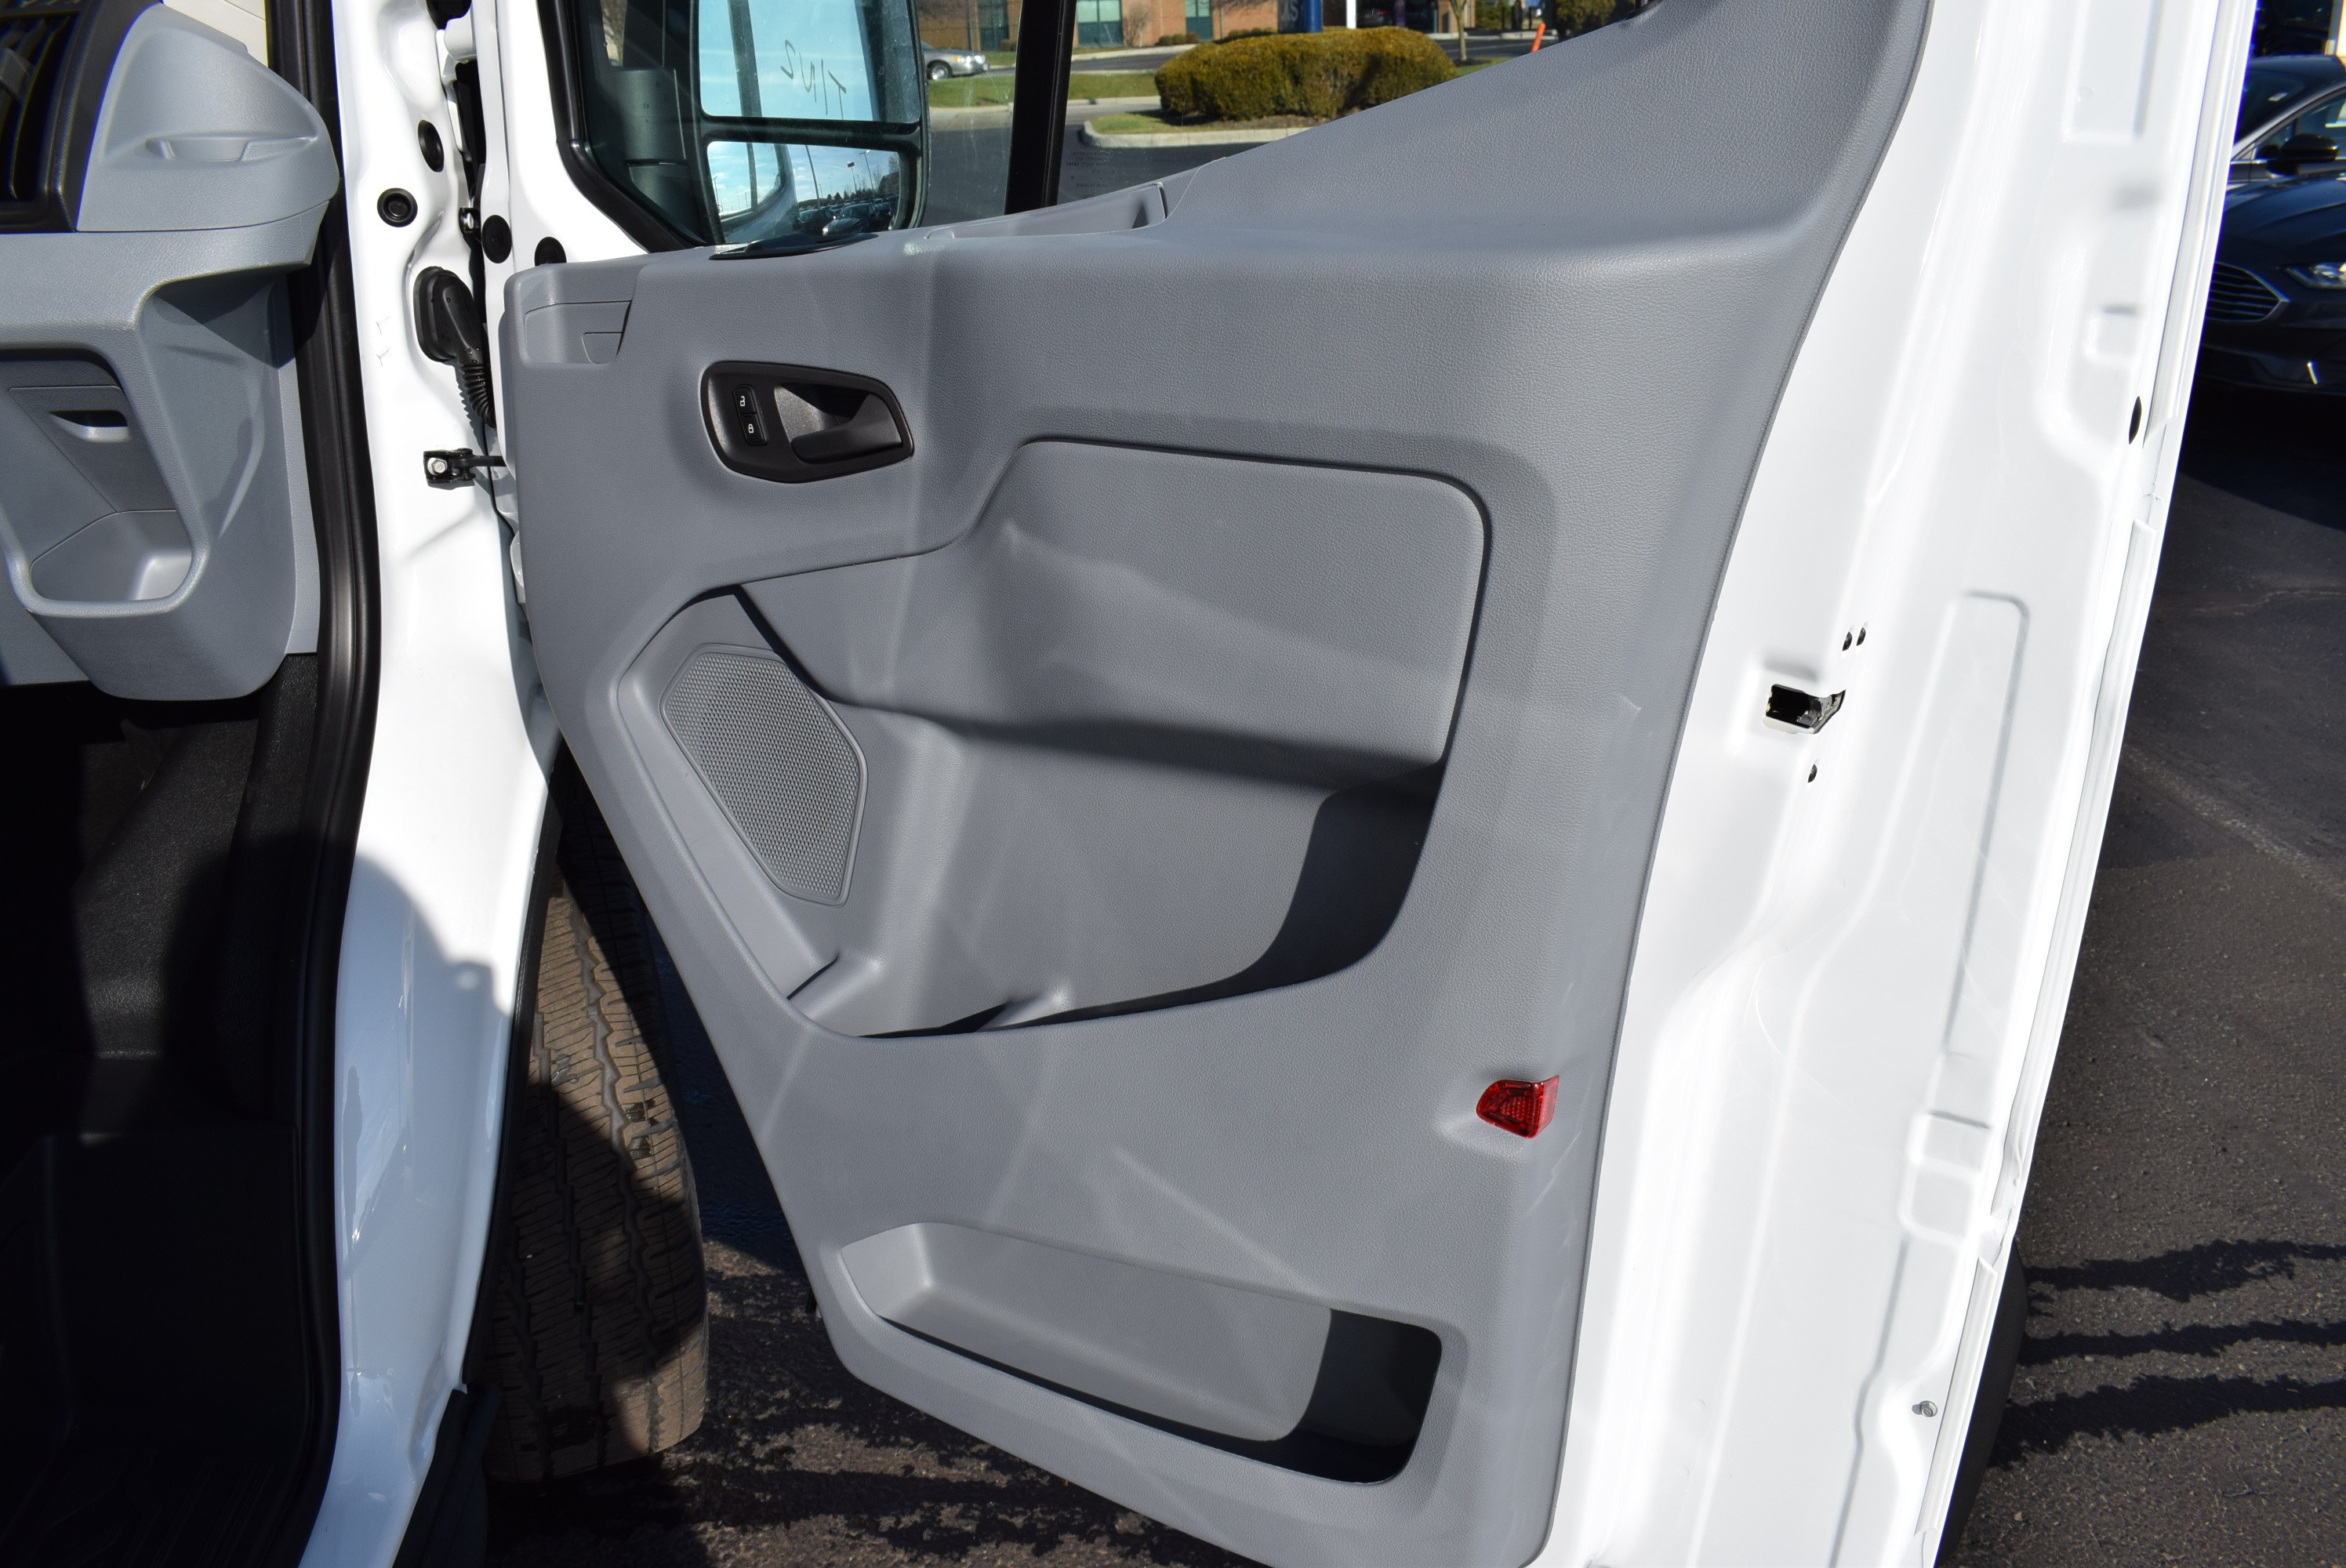 2019 Transit 150 Low Roof 4x2,  Empty Cargo Van #T19054 - photo 13